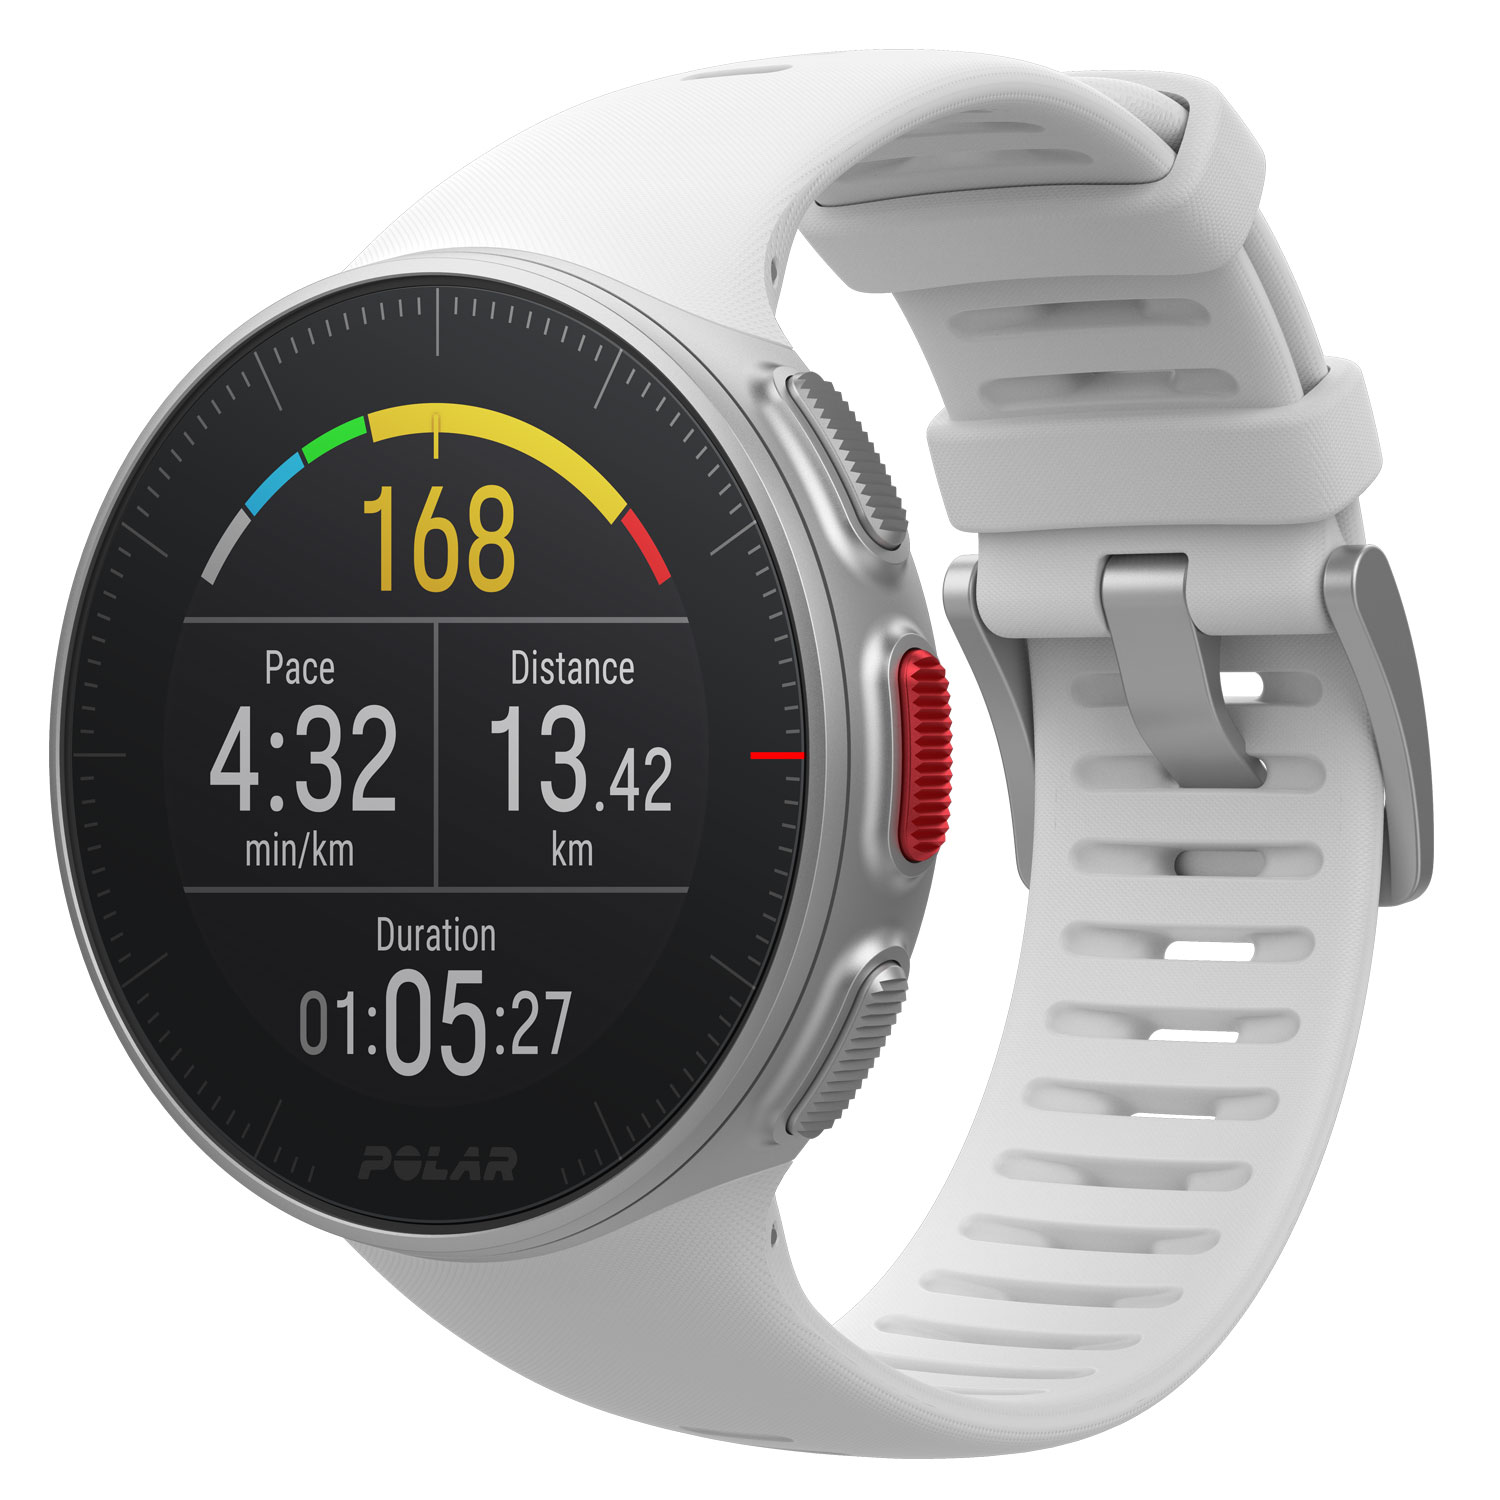 64b1494e9 If you're looking for a high-end waterproof companion with ultra-long  battery life for triathlon or marathon training, Polar Vantage V is the  perfect match.